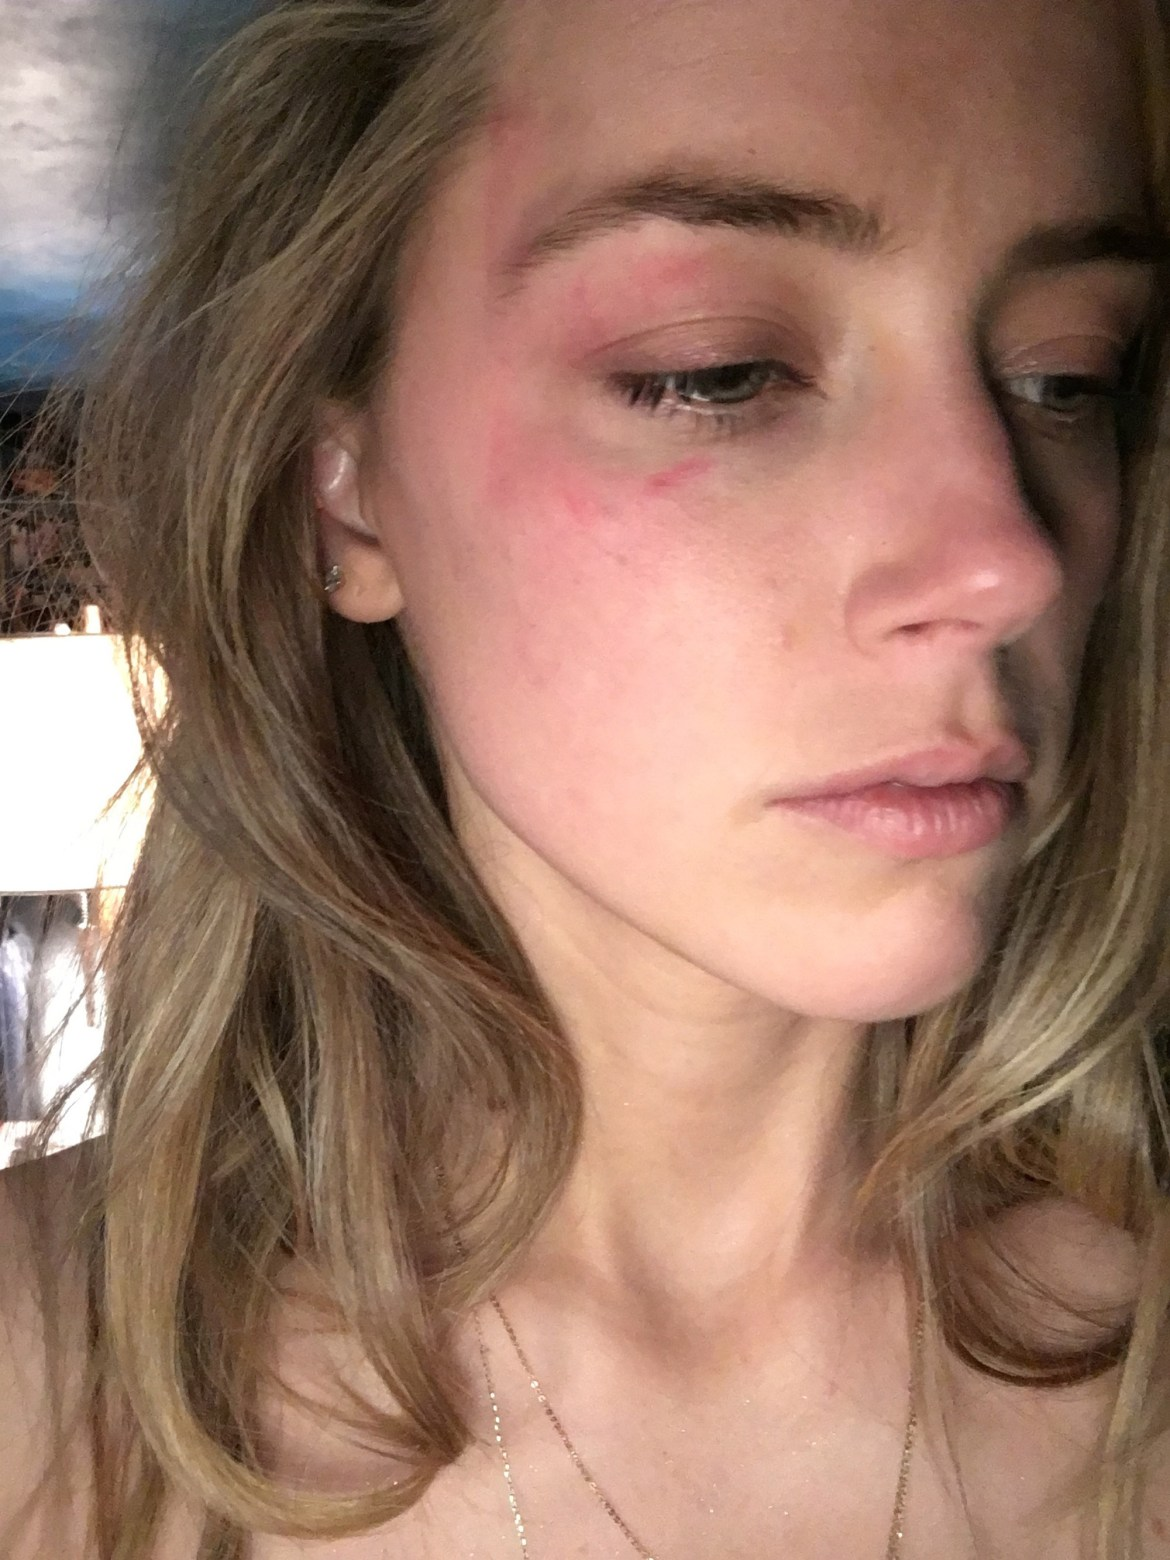 Court sees photos of Amber Heard's bruised face